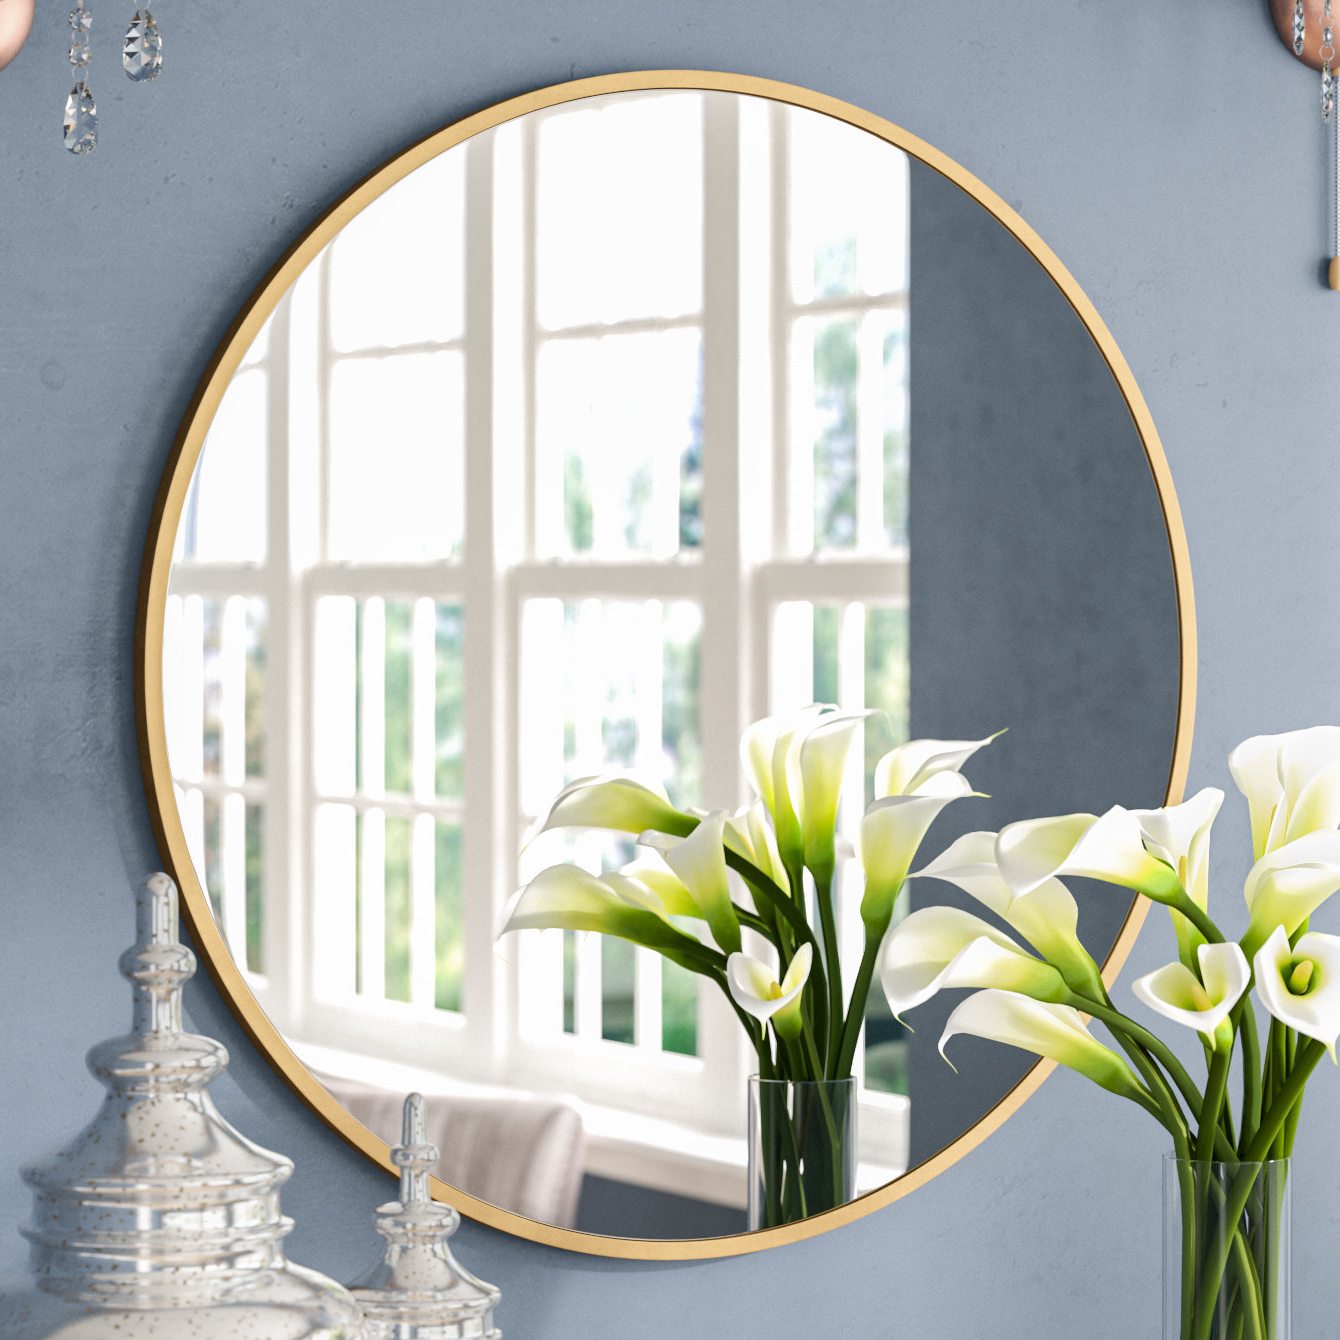 Widely Used Katsikis Accent Mirror Throughout Moseley Accent Mirrors (View 6 of 20)